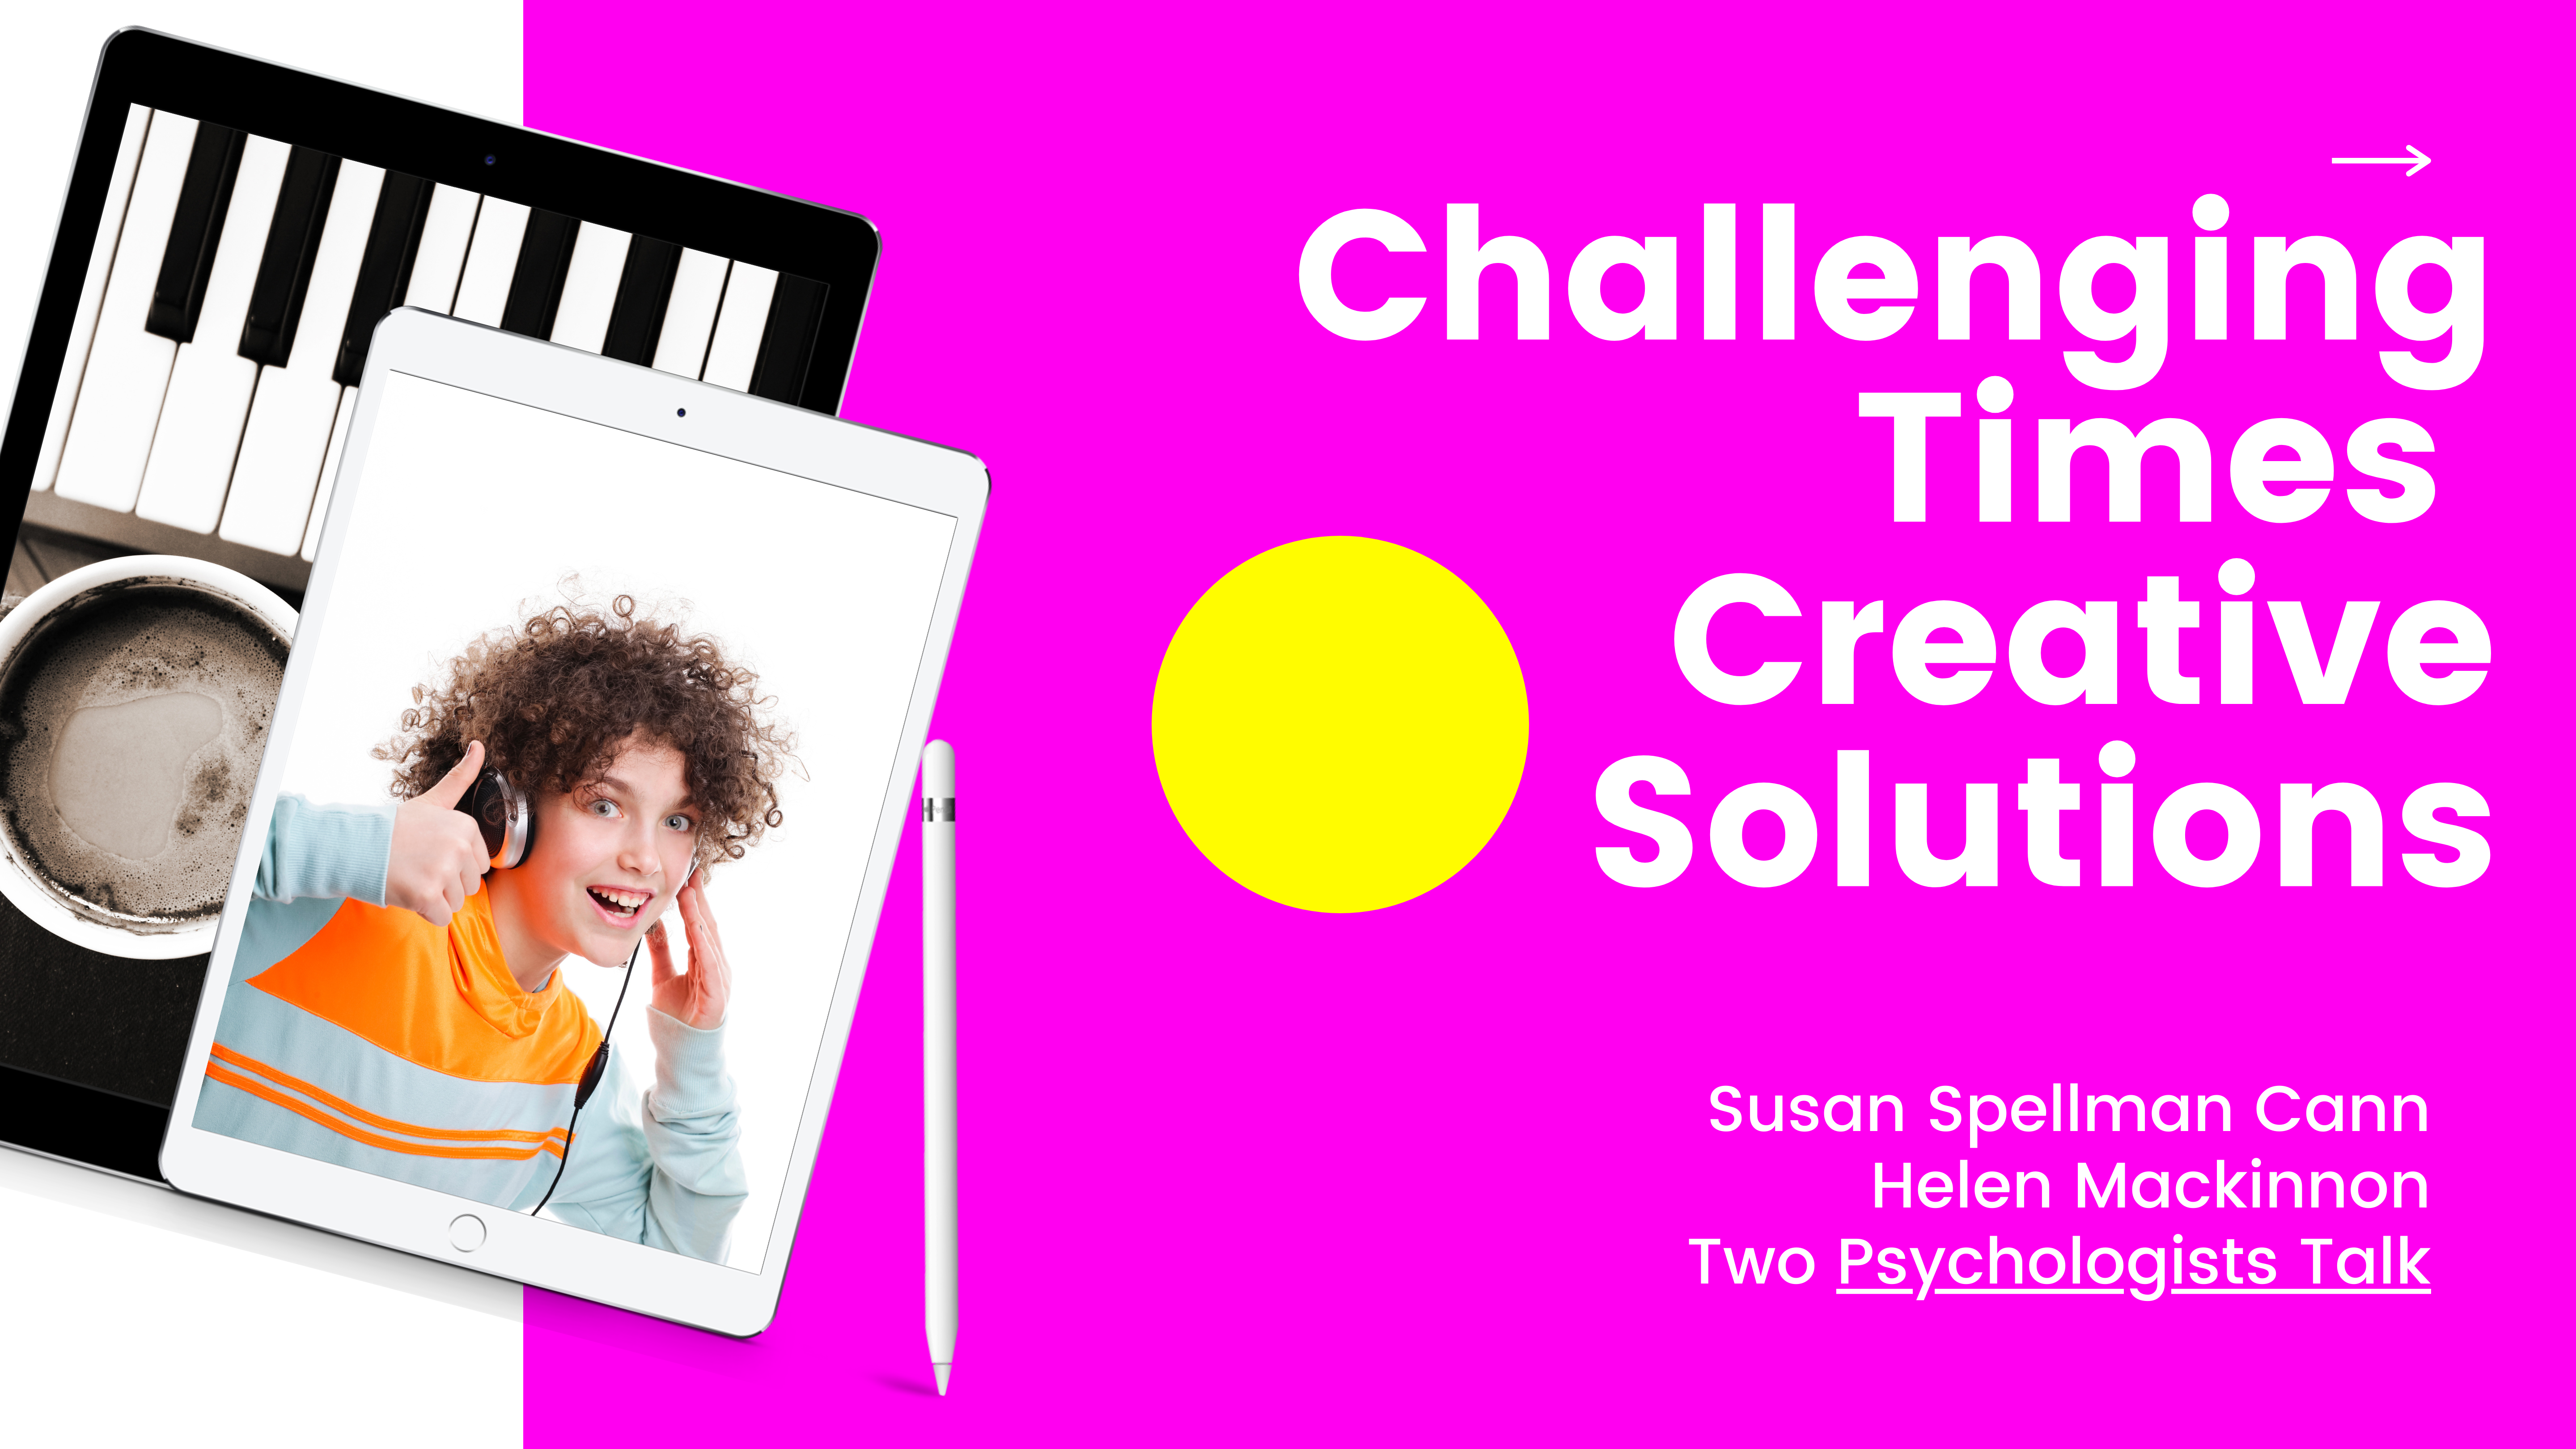 Challenging Times Creative Solutions (1)